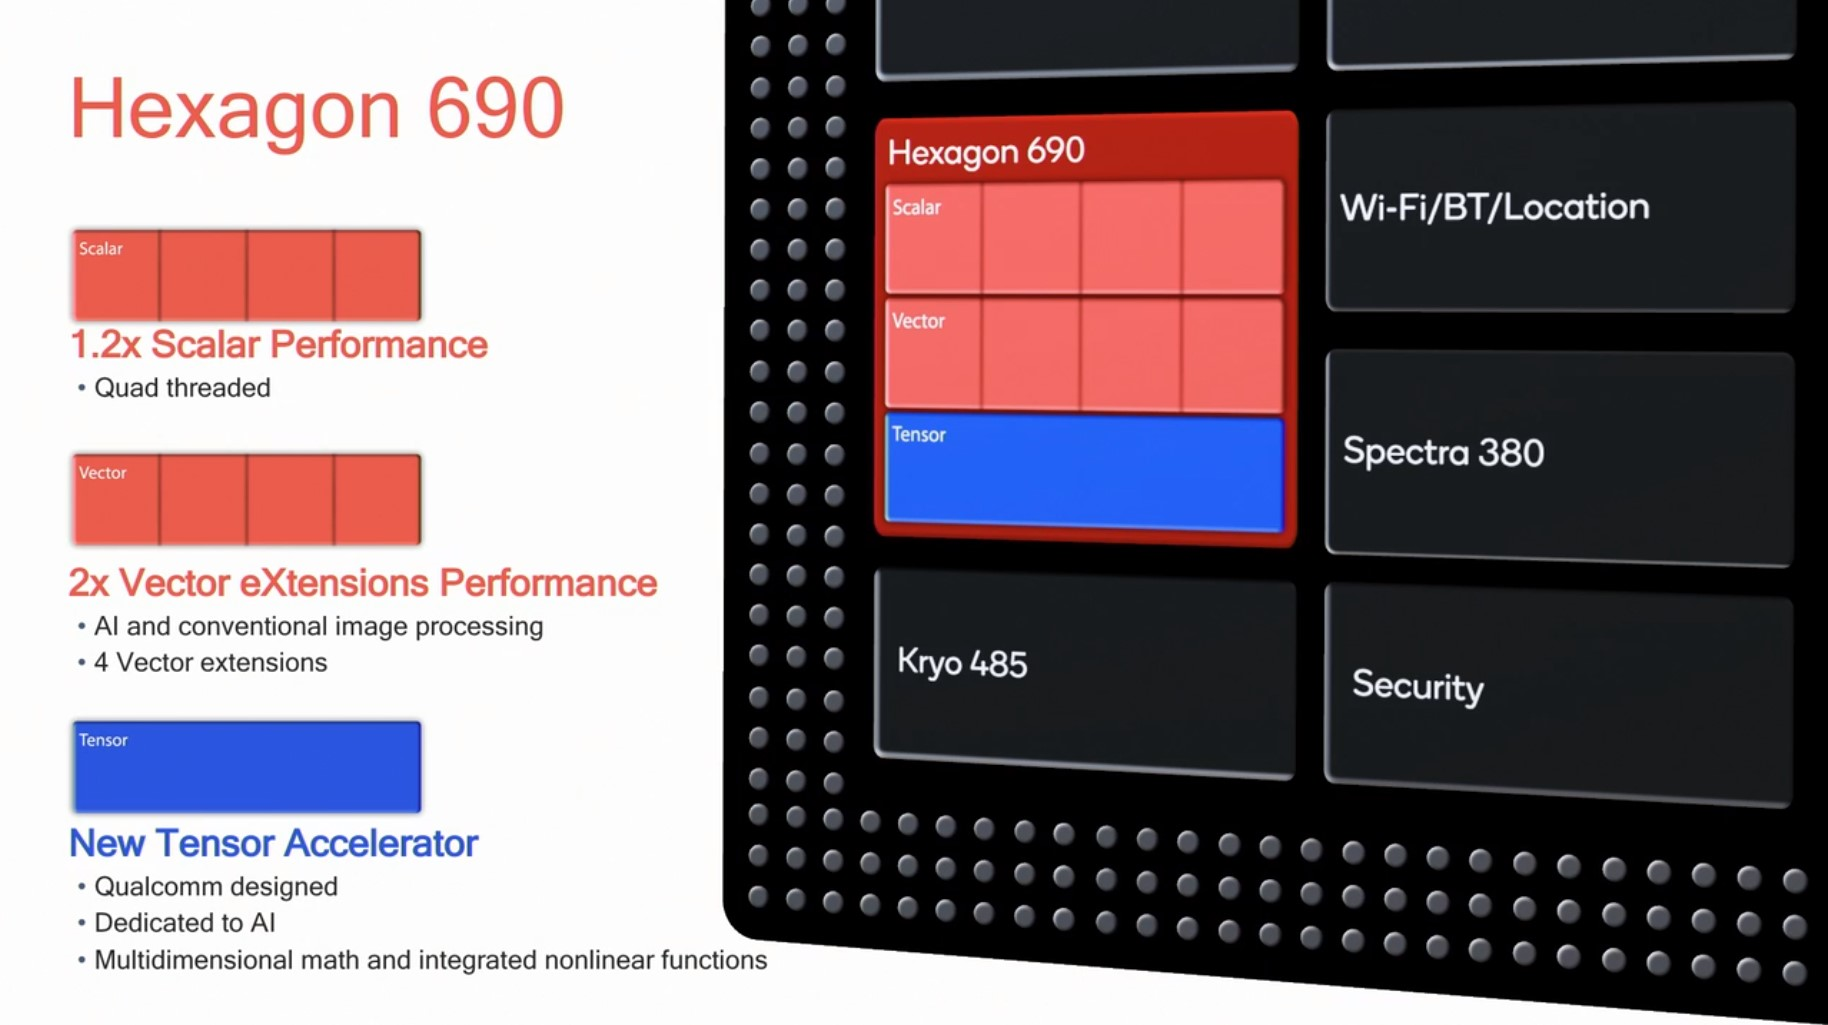 Hexagon 690 Vastly More Capable, ISP, and Connectivity - The